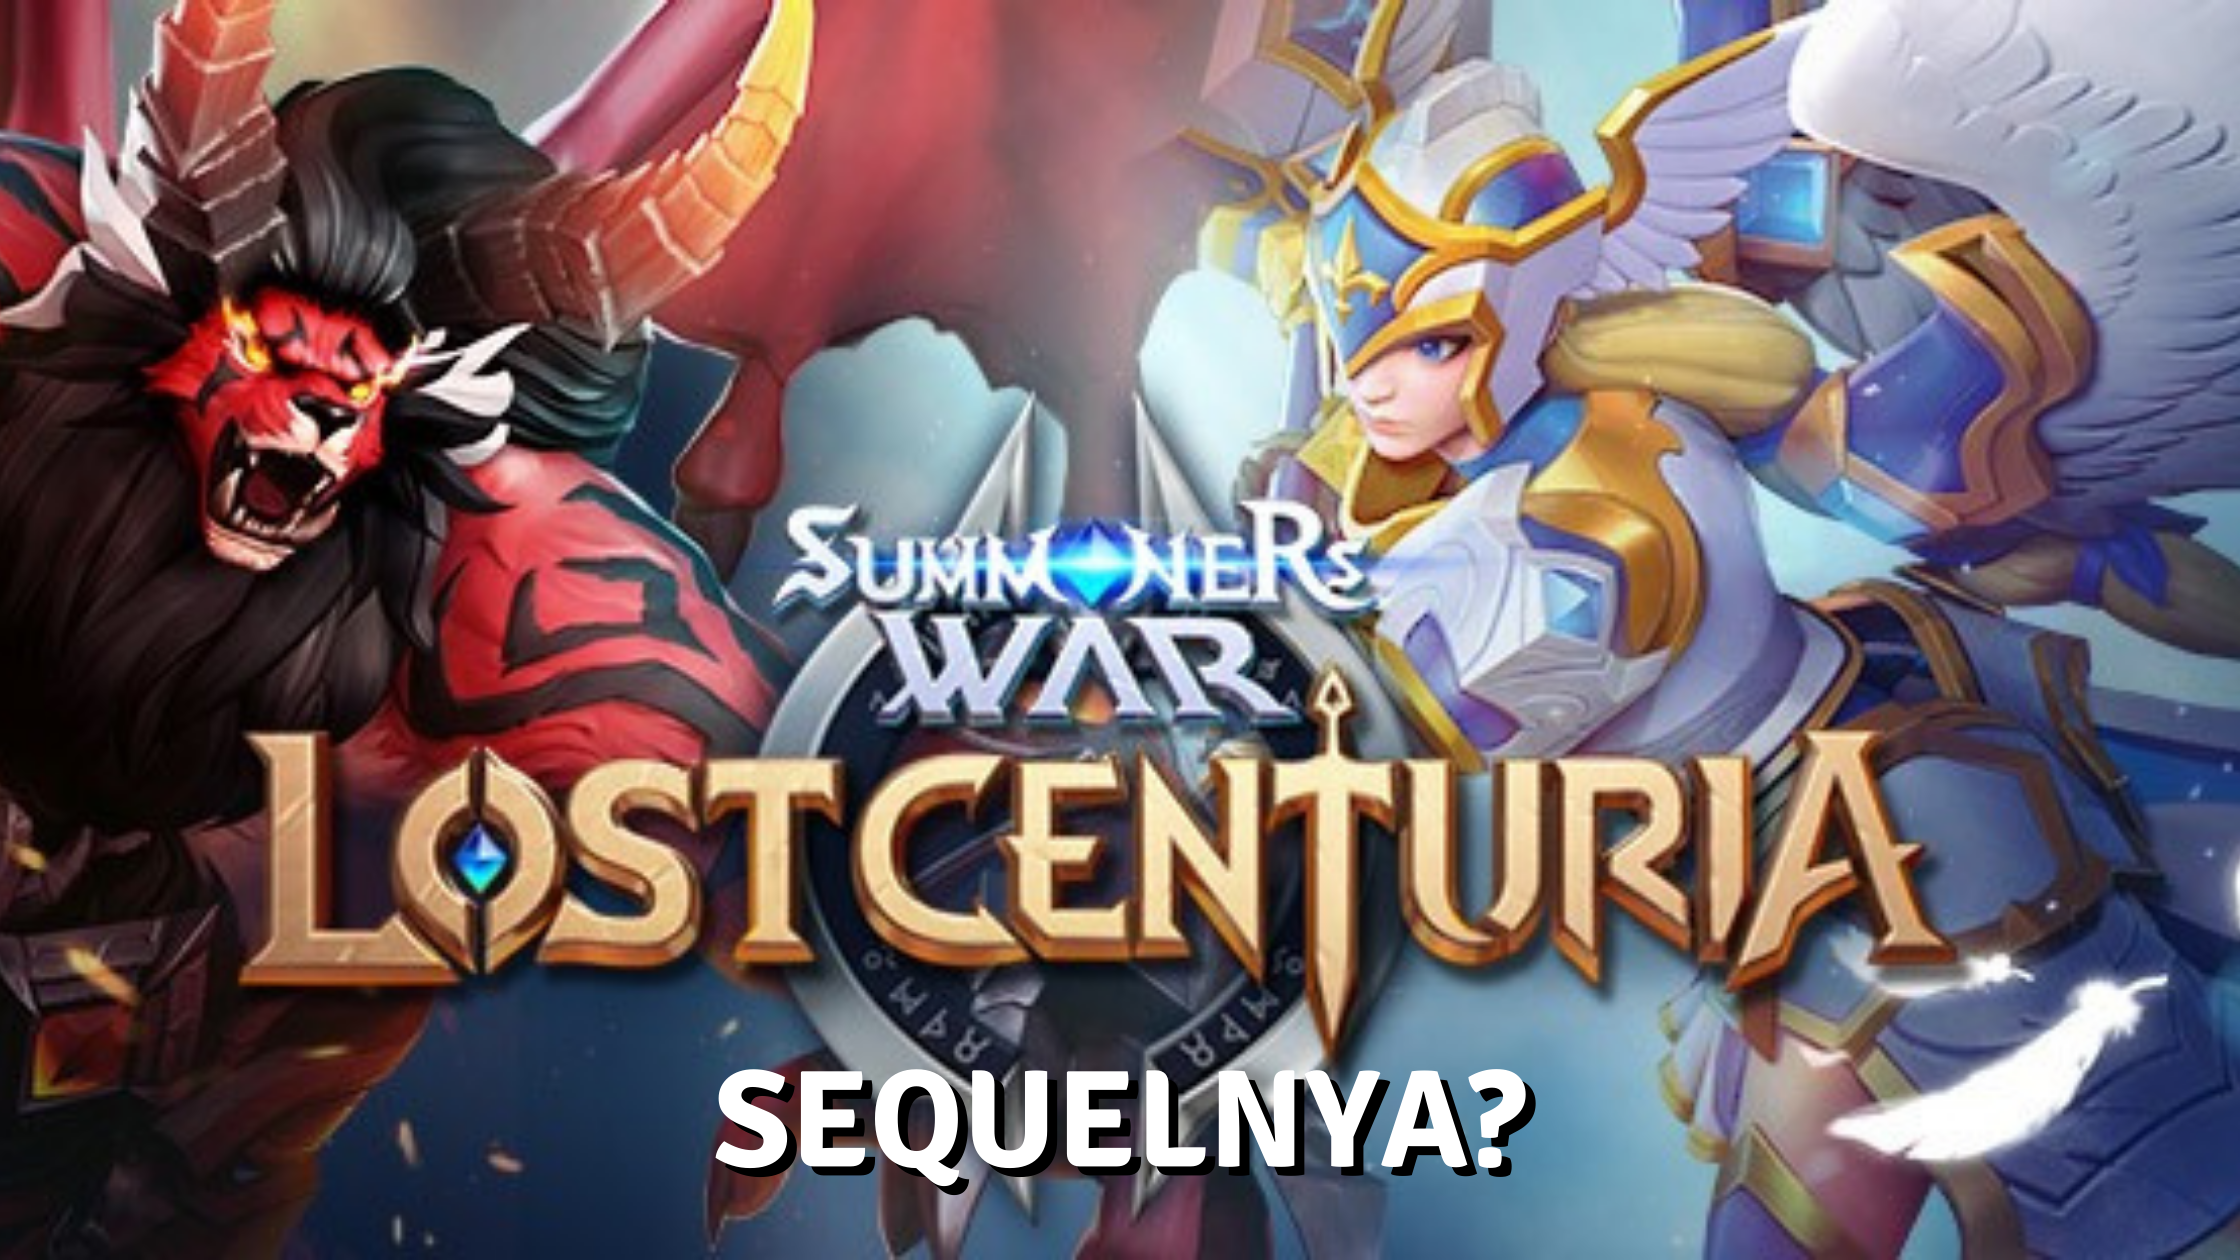 Summoners War: Lost Centuria untuk Mengikuti Close Beta Testing pada 21 November 2020